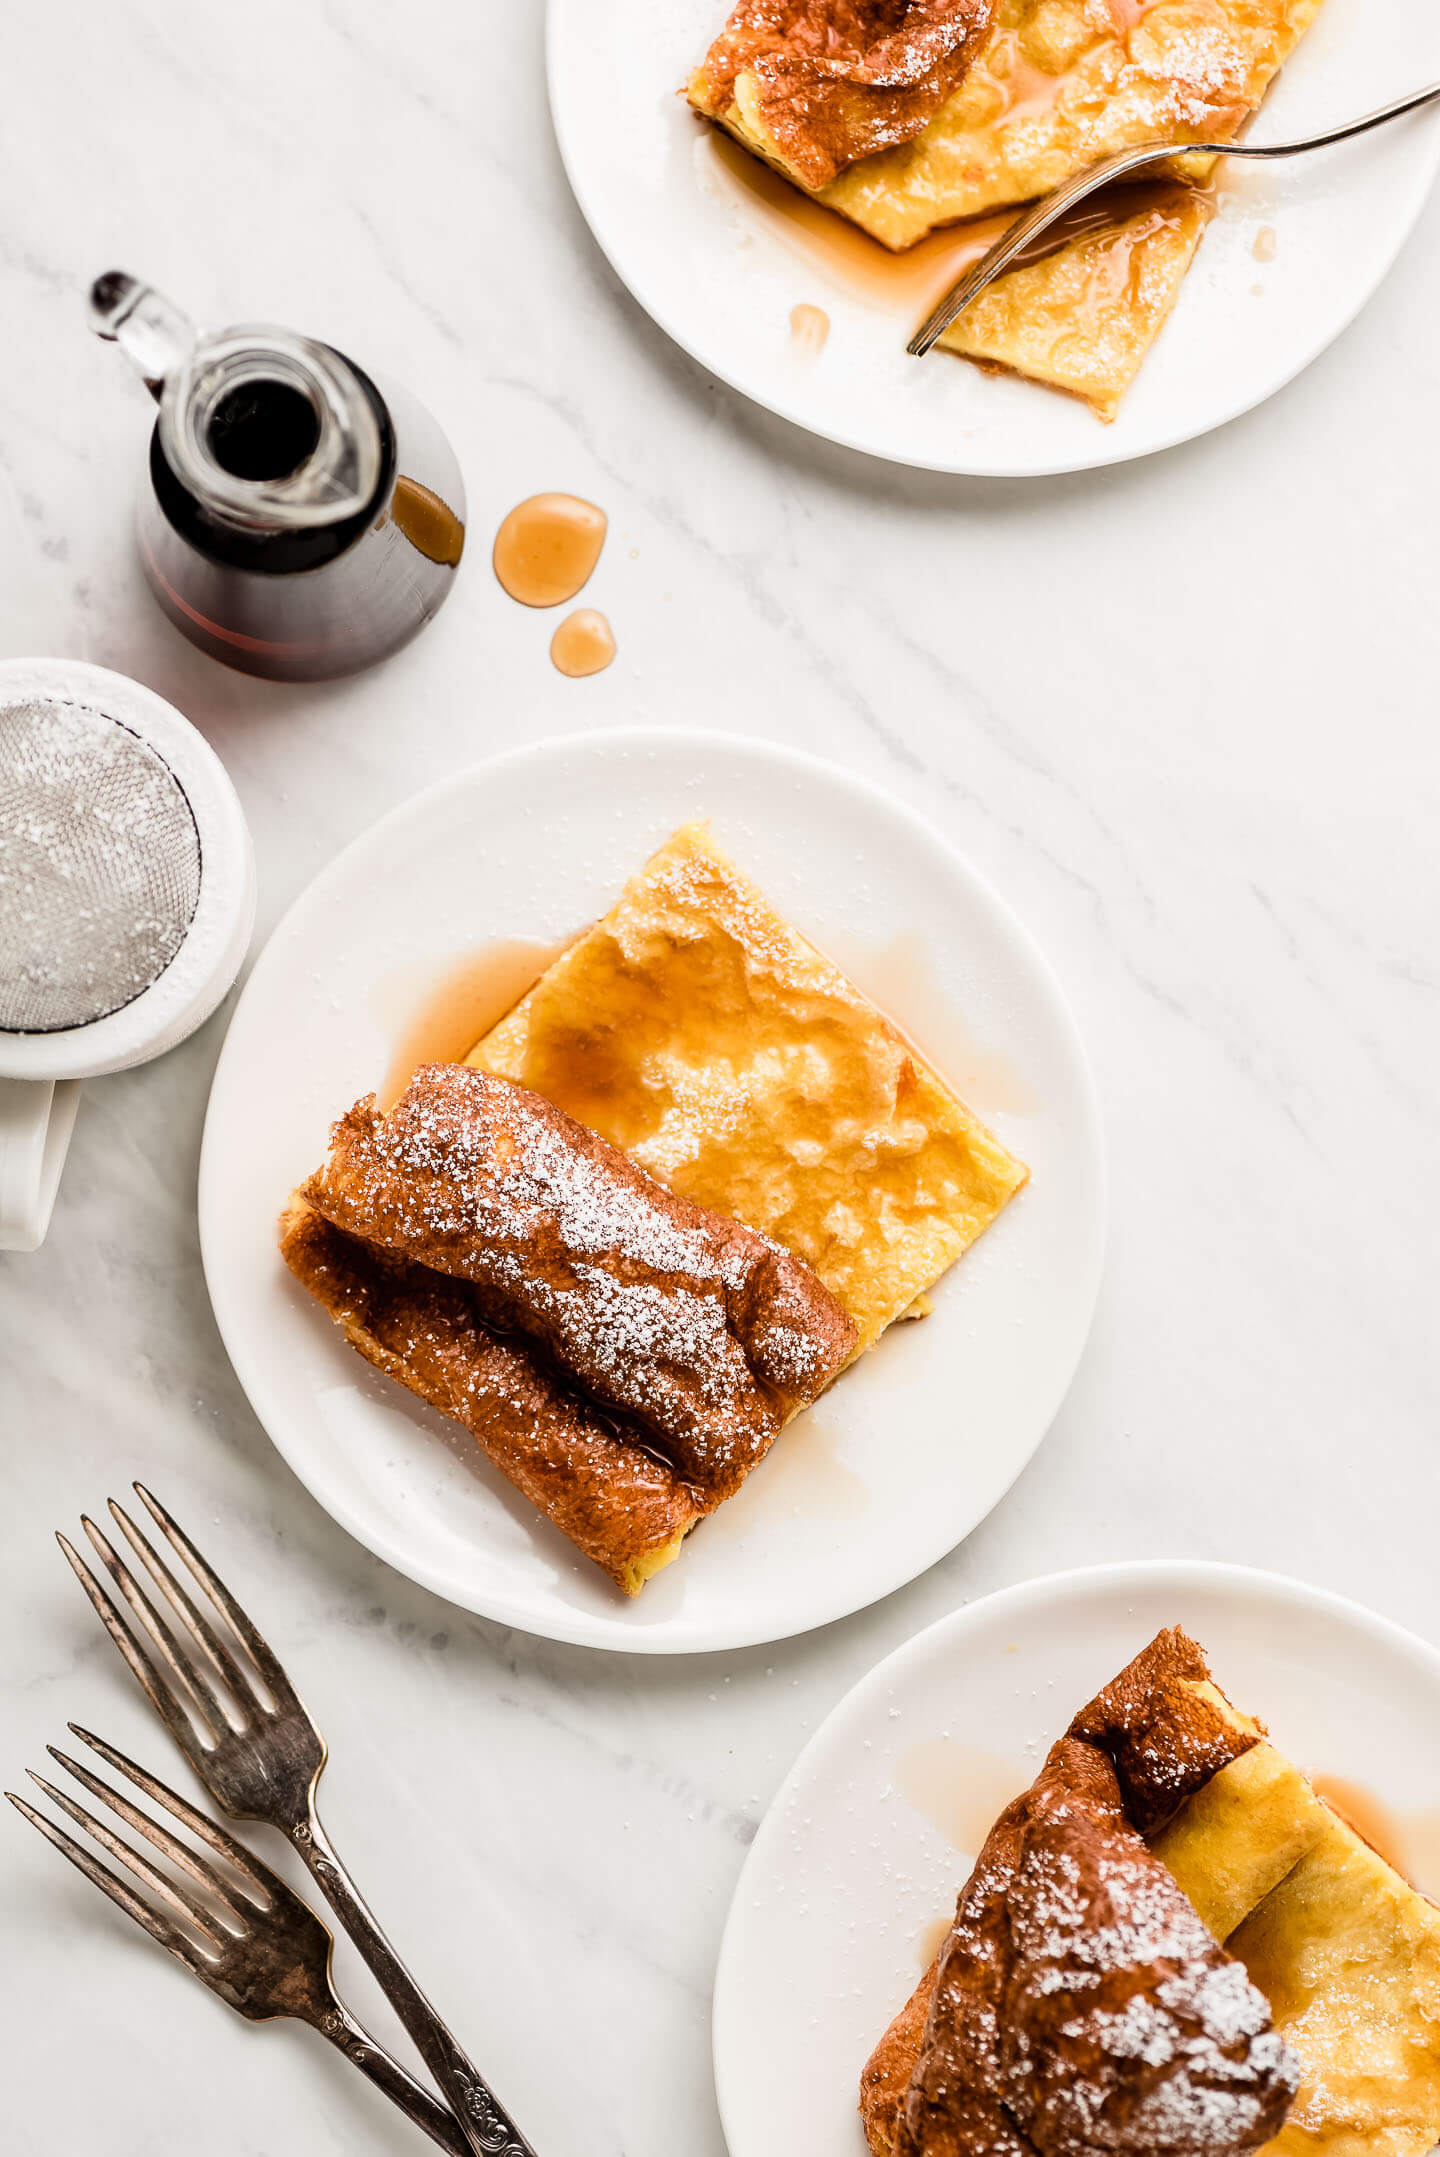 Plates of slices of German Pancakes topped with syrup and powdered sugar with syrup and powdered sugar to the sides.